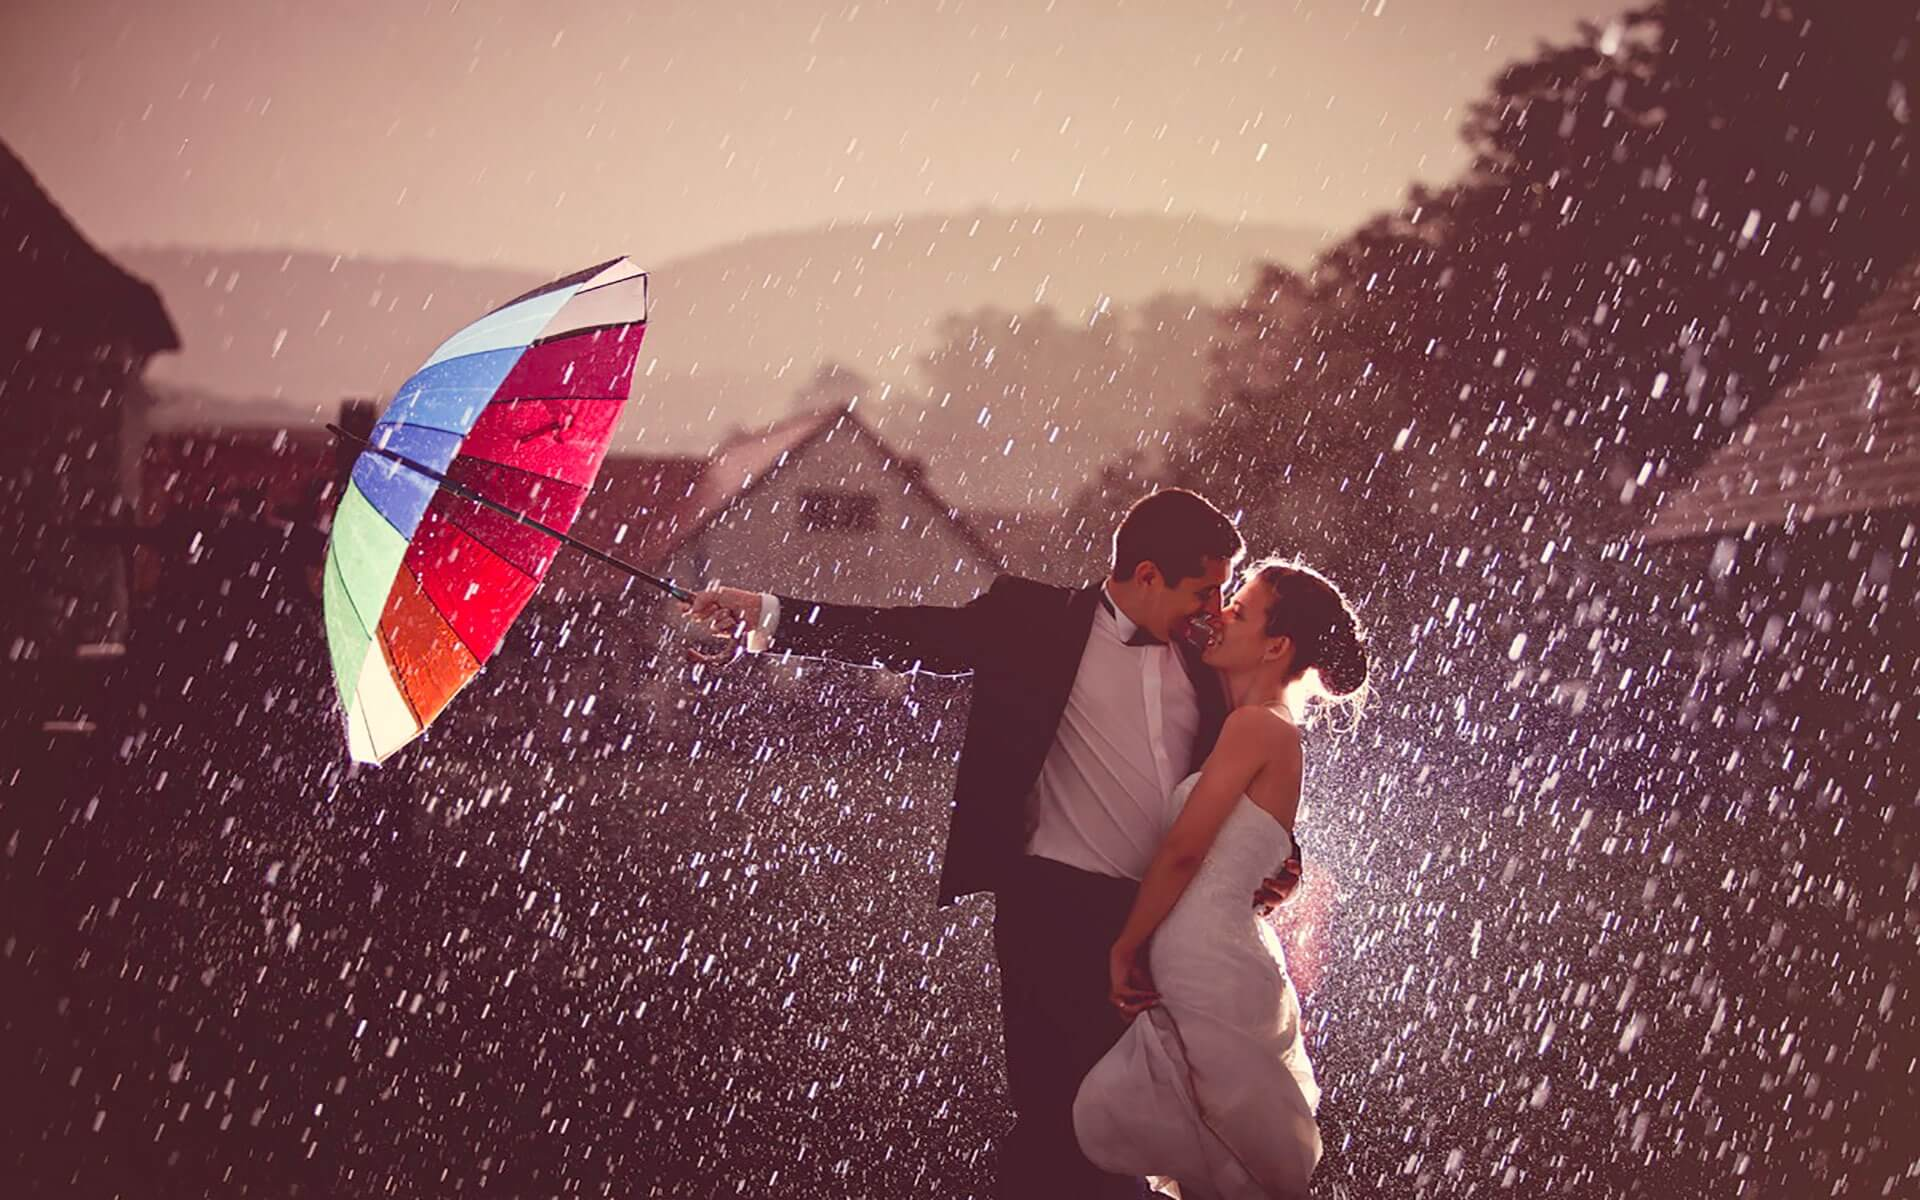 romantic rainy wallpaper - photo #6